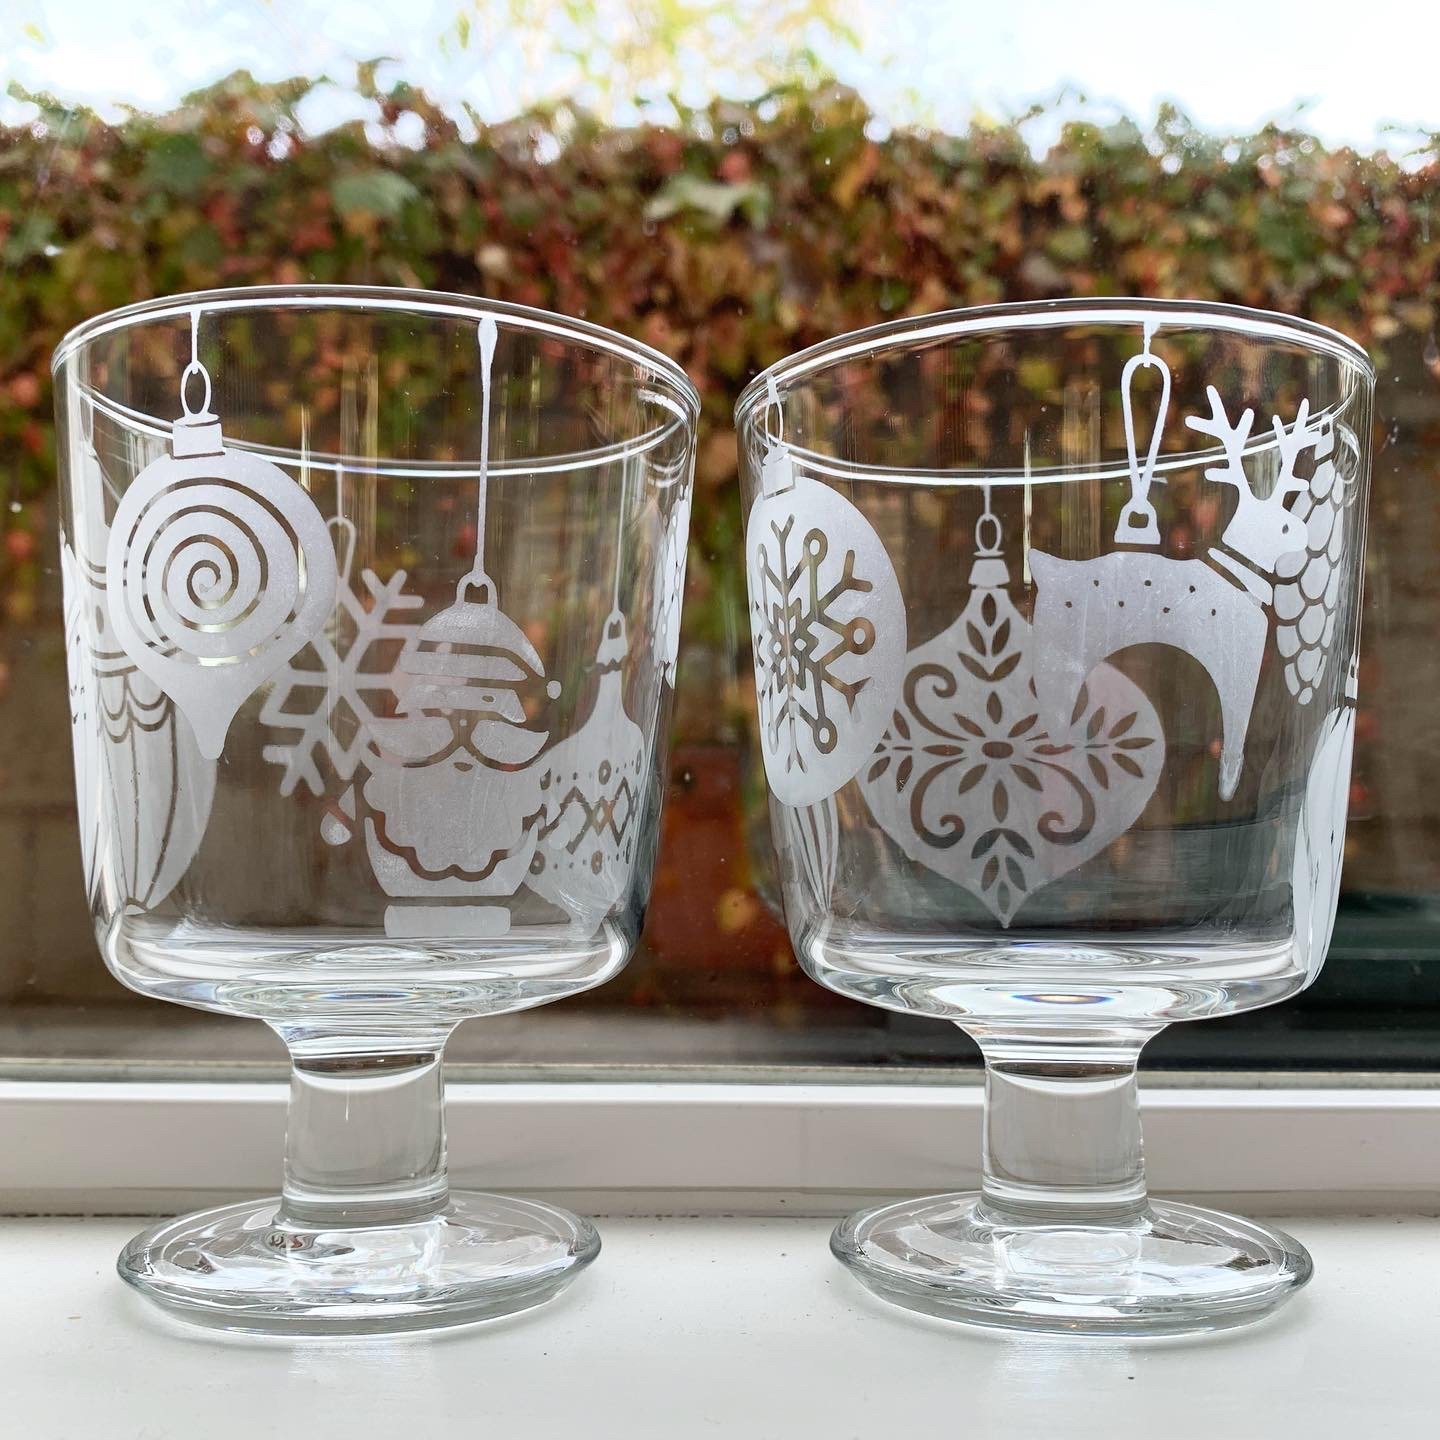 glogg glasses 2